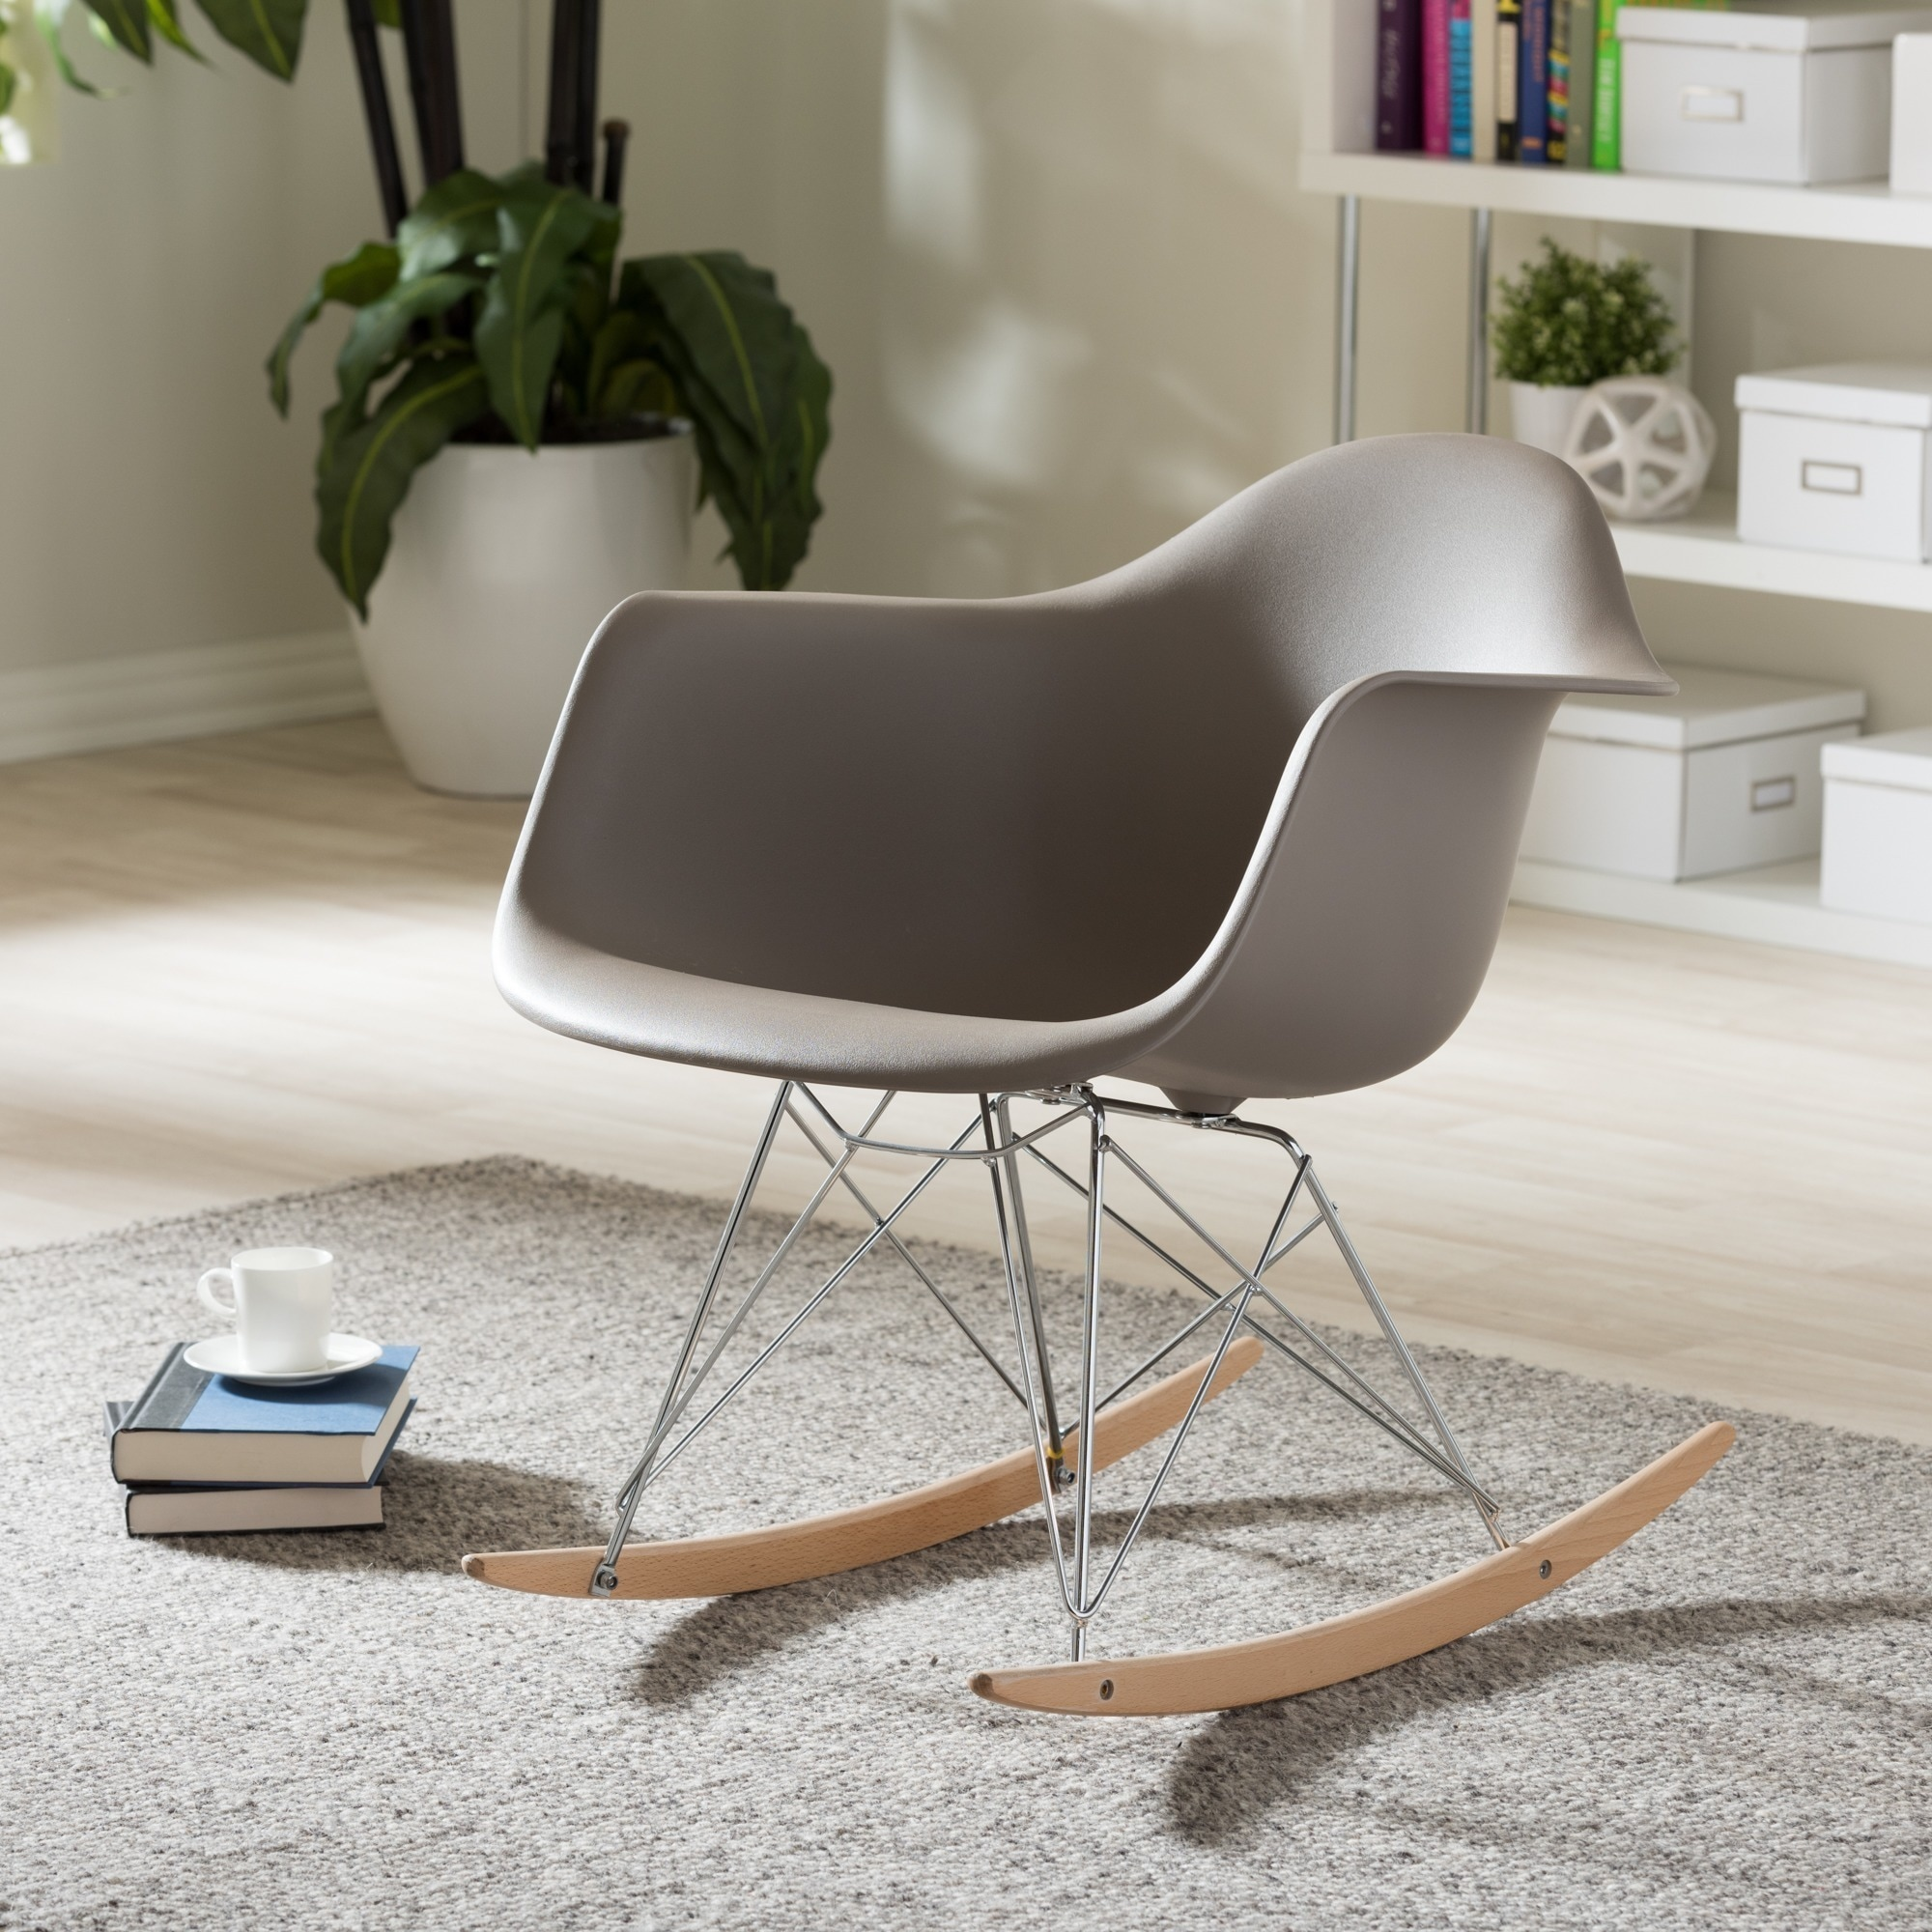 rocking chair cradle portable stool shop taylor olive wallby small on sale free shipping today overstock com 20543329